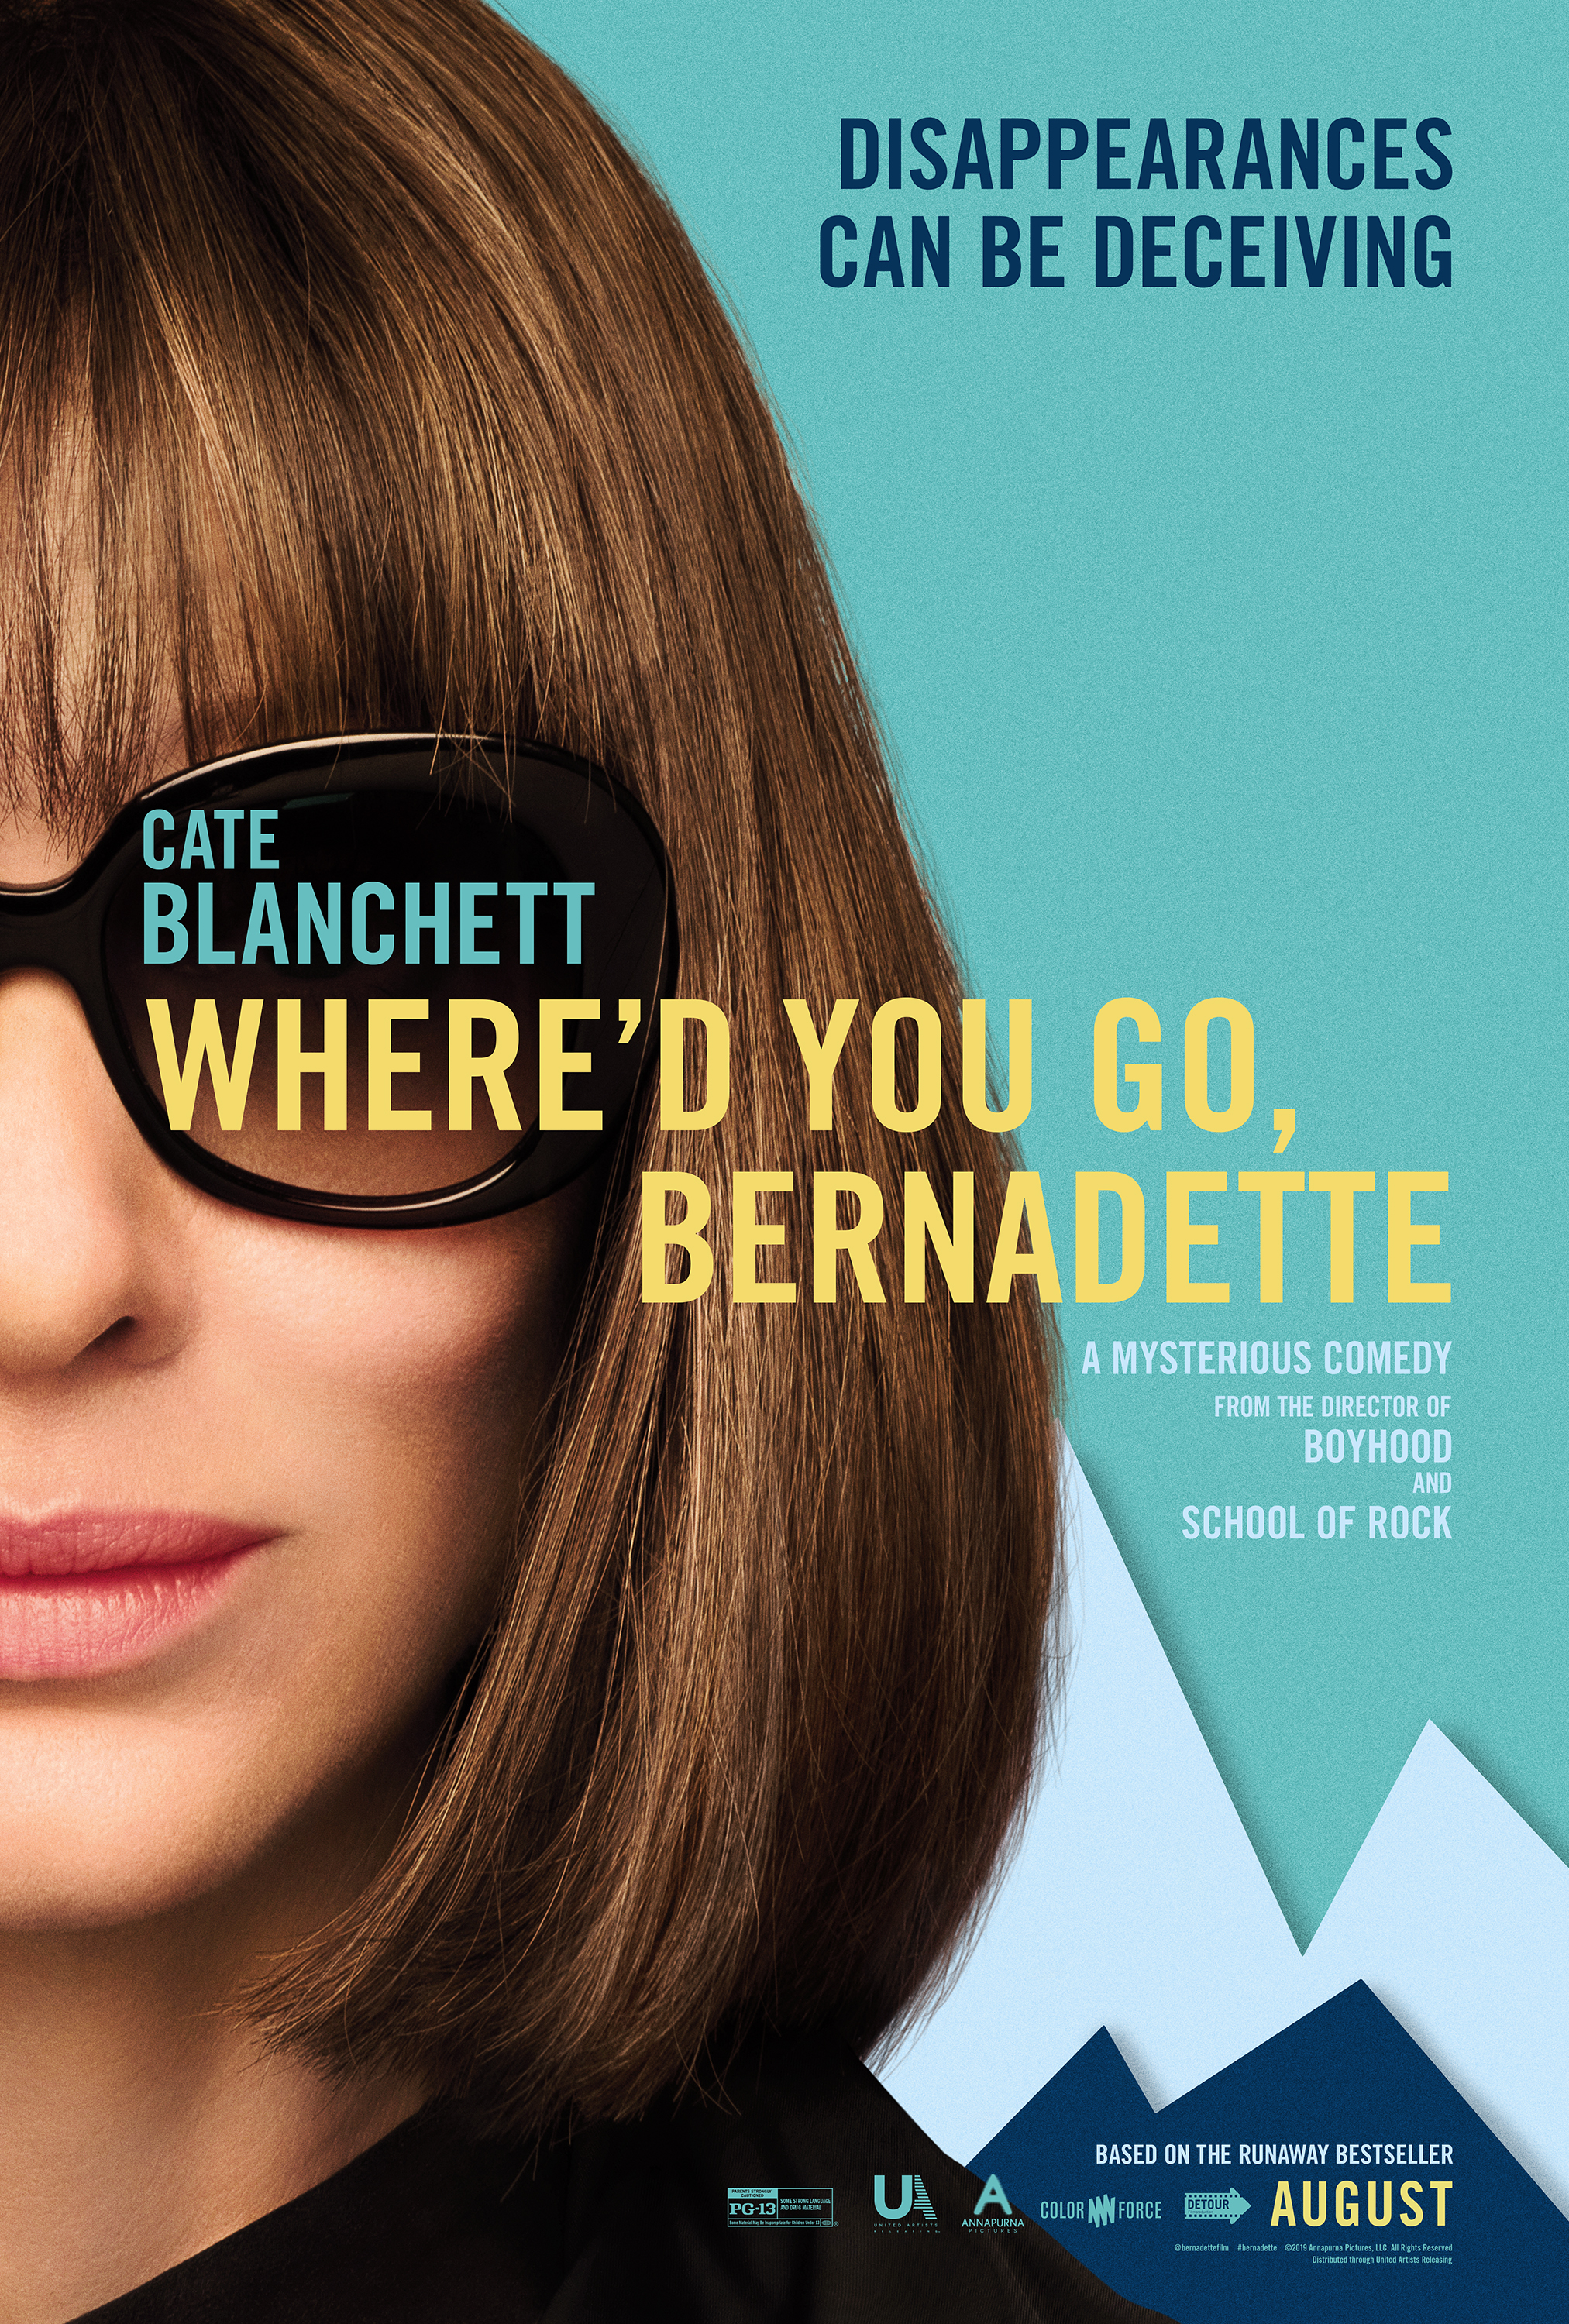 "Othersode #31: Laurence Fishburne is an E-mail / Where'd You Go Bernadette & Interview w/Kate Davies - Go missing with the #BookSquad as we discuss the new movie Where'd You Go Bernadette?, based on the novel by Maria Semple. We talk about how the epistolary form translates on screen, the depiction of a few female characters, and the thing everyone is wondering: What is Bernadette's deal anyway? In the second half of this #othersode, Emily interviews Kate Davies, author of the new novel In at the Deep End, which has been described as a ""lesbian Bridget Jones."" Then we get into listener feedback on The Lion King (including the politics of asking for refunds at movies) and what's on the #BookSquadBlog! Read along with us for our next #bookpisode on The Memory Policy by Yoko Ogawa (September 9) and for our next #othersode on We Have Always Lived in the Castle by Shirley Jackson, featuring special guests Lisa Kroger and Melanie Anderson (authors of Monster, She Wrote and co-hosts of podcast Know Fear) on September 23."